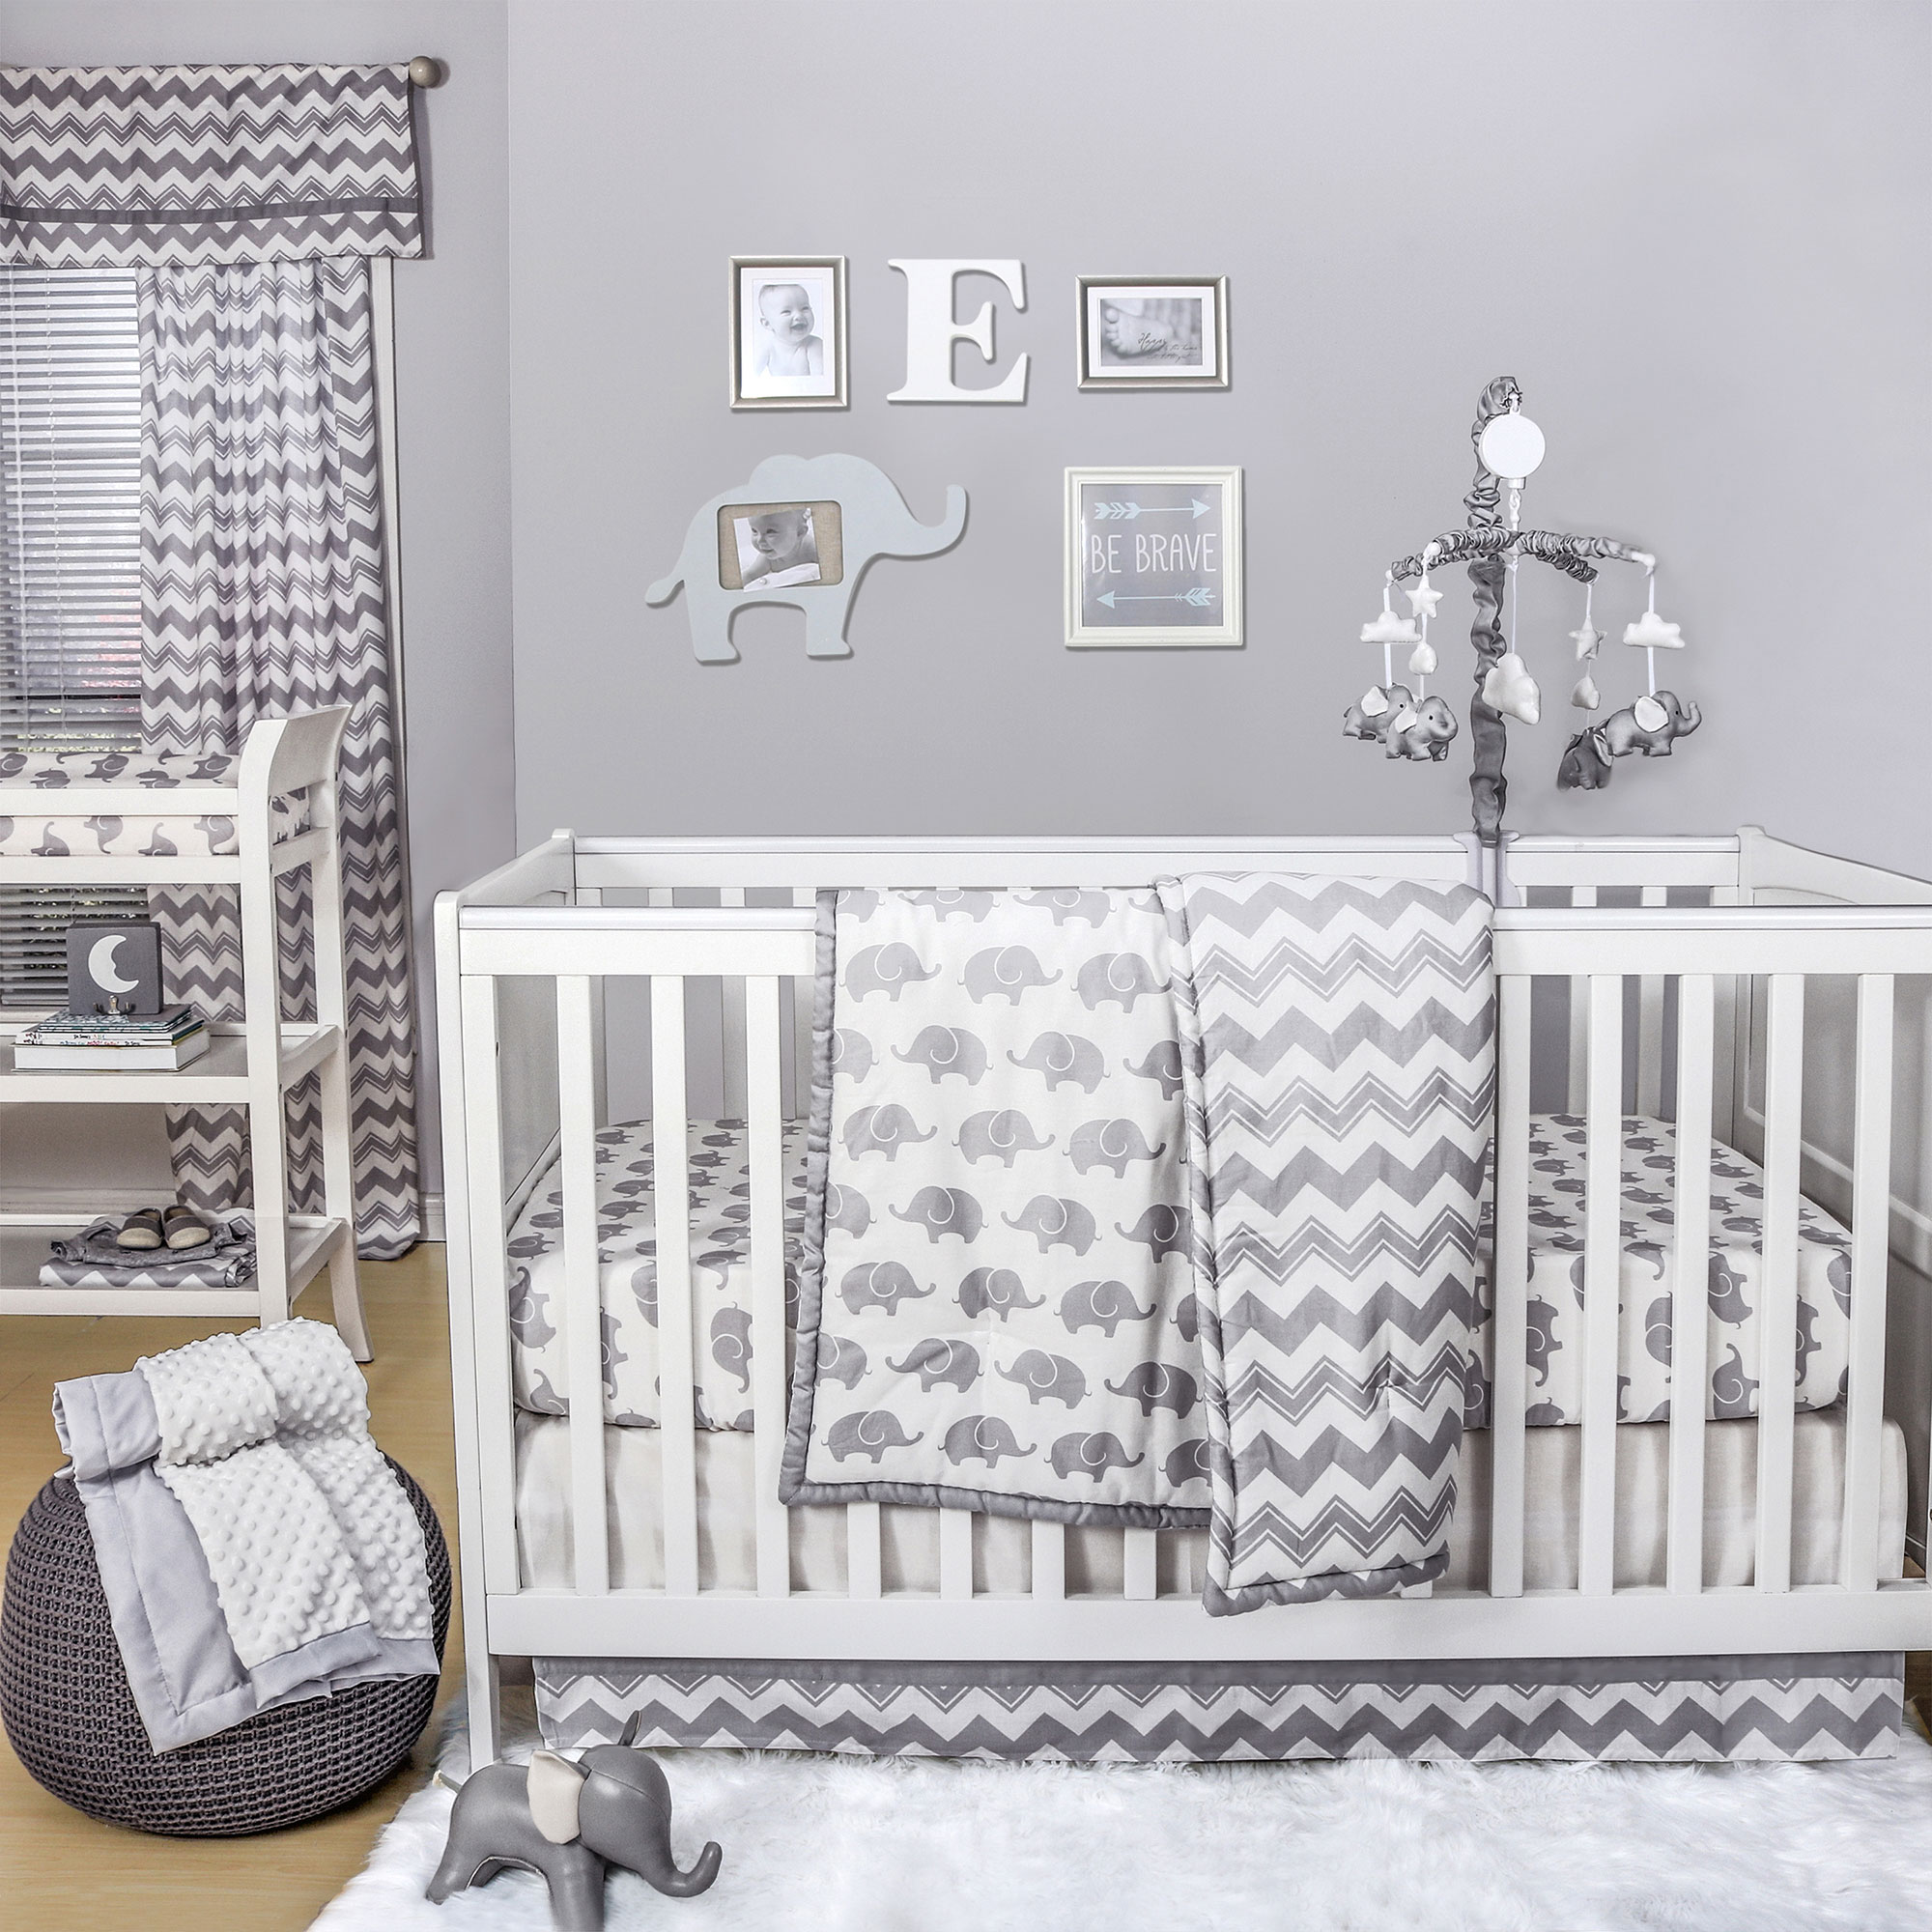 Details About Ellie Chevron Grey White Elephant Uni Baby Crib Bedding 11 Piece Sleep Set